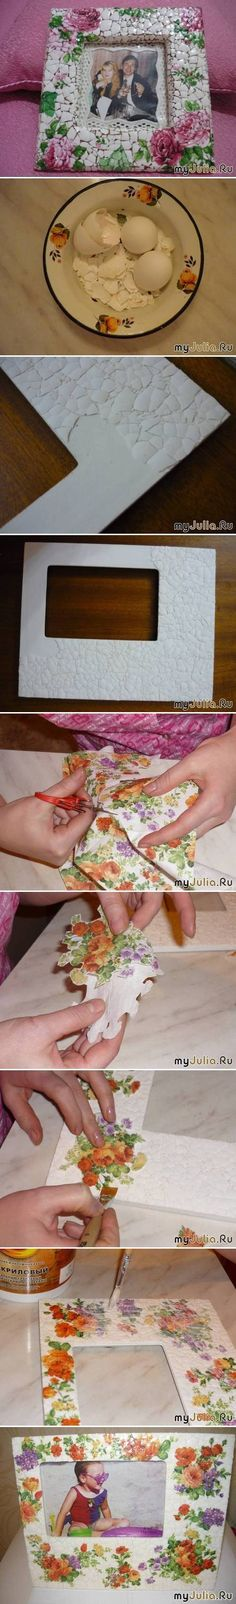 Eggshell Mosaic Craft Tutorials to Try With Your Kids Today Homemade DIY Eggshell Mosaic Picture Frame.Eggshell Mosaic Craft Tutorials to Try With Your Kids Today Creative Crafts, Fun Crafts, Diy And Crafts, Arts And Crafts, Mosaic Crafts, Mosaic Art, Diy Projects To Try, Craft Projects, Craft Ideas